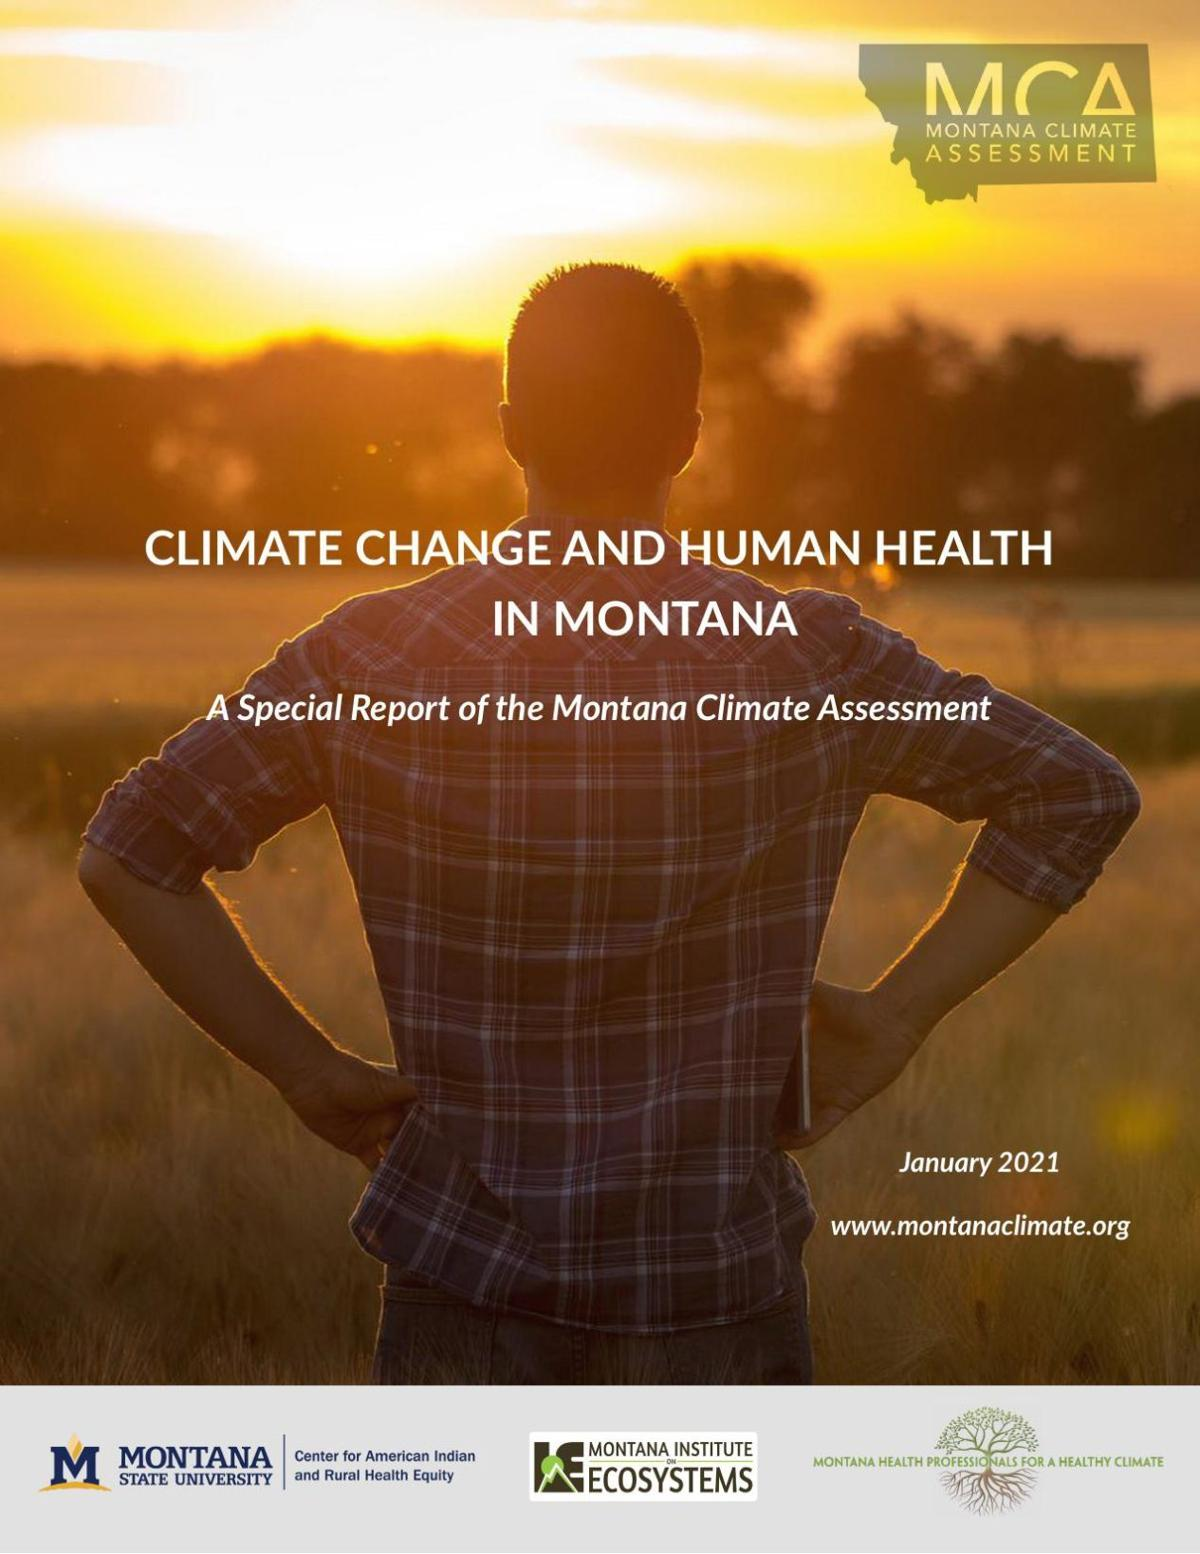 CLIMATE CHANGE AND HUMAN HEALTH IN MONTANA